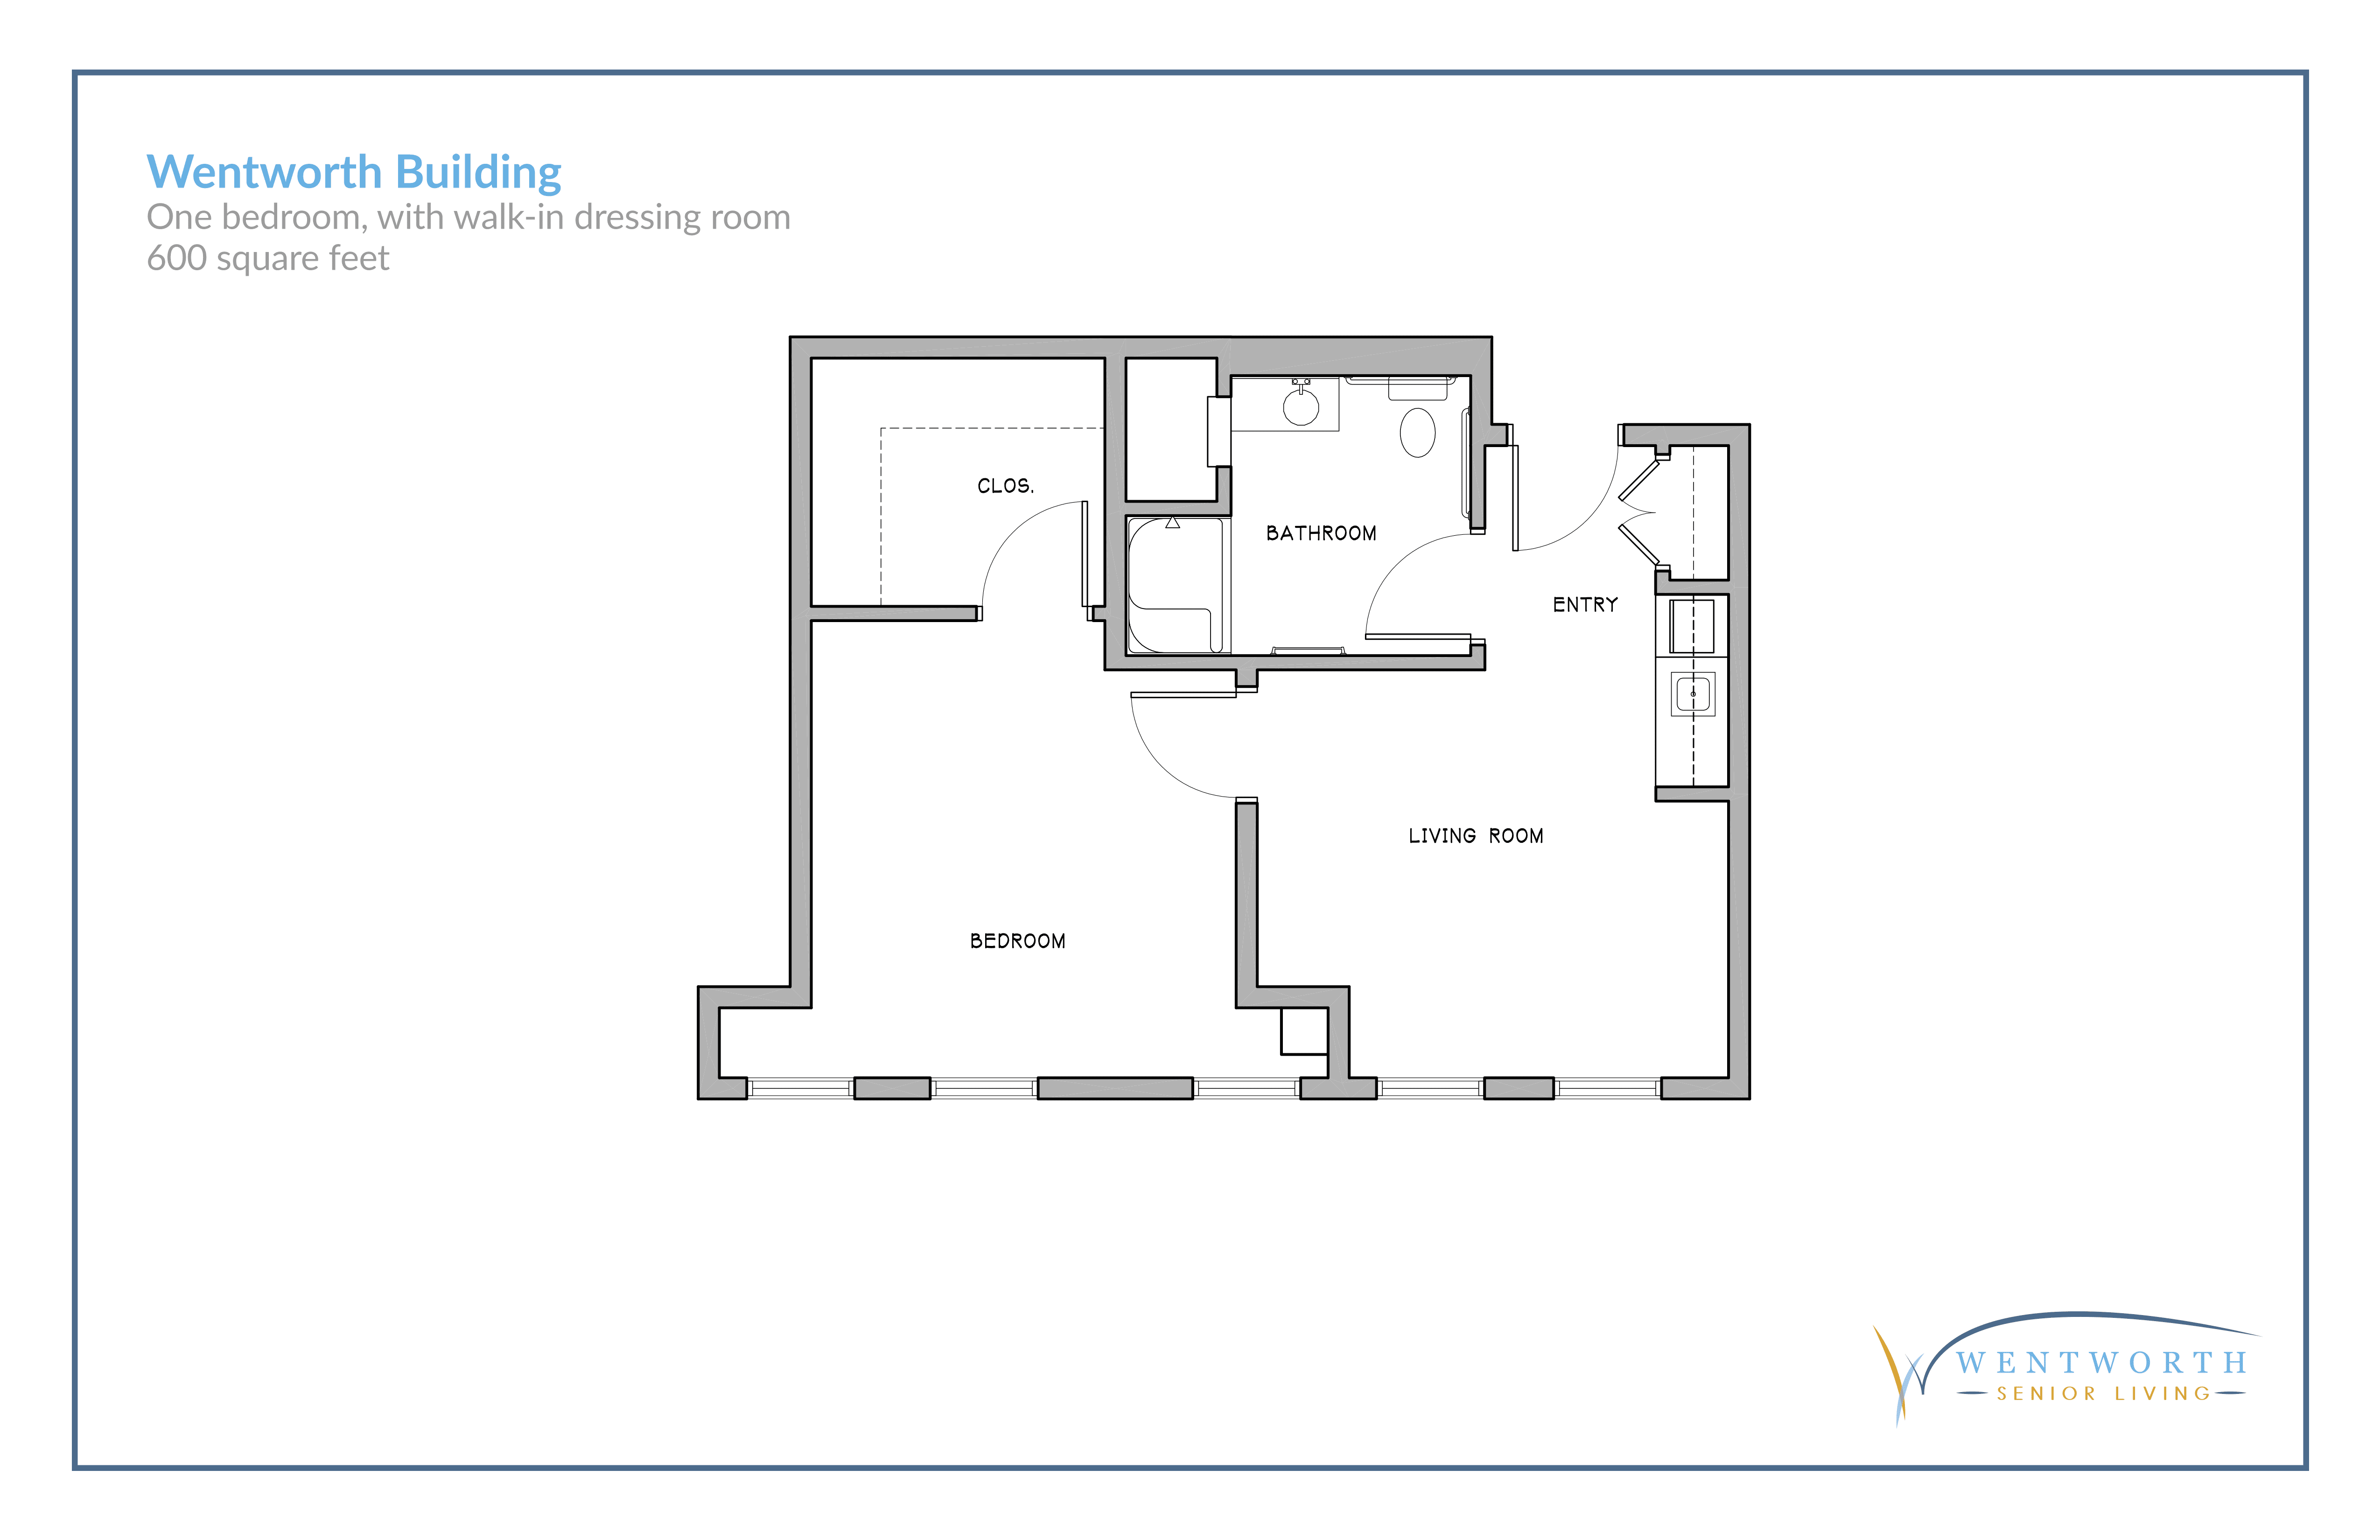 Floor plan for a one bedroom unit with a walk-in dressing room.